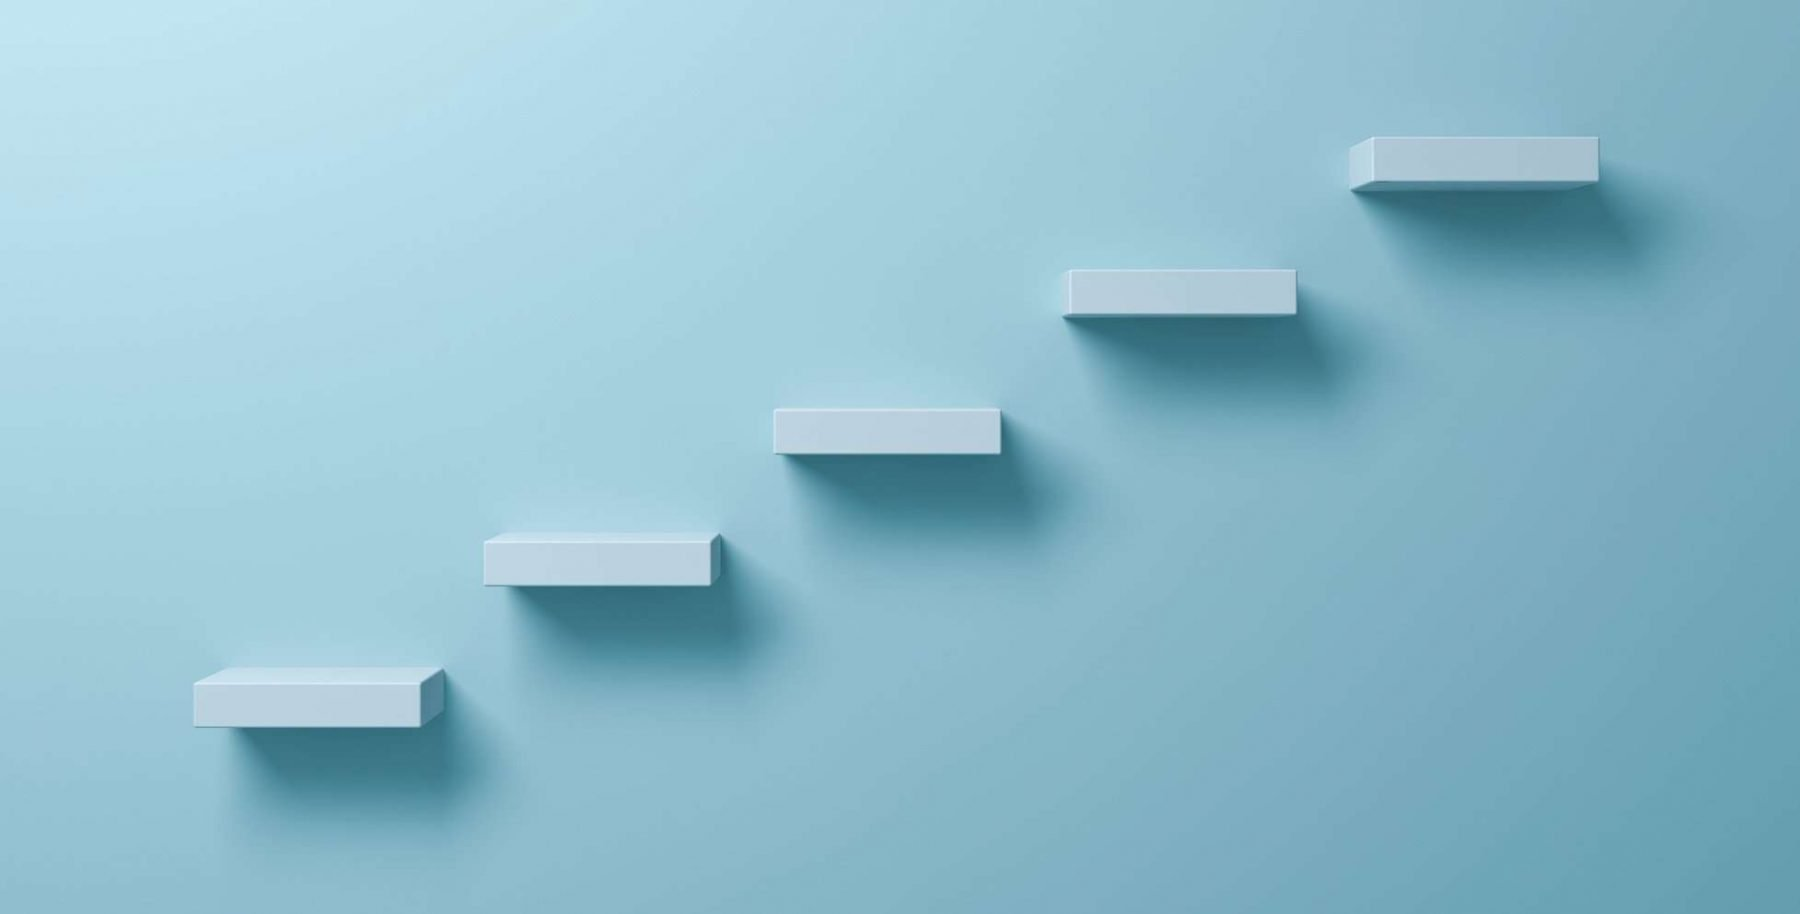 This is a picture of Abstract stairs or steps concept on light green pastel color wall background Competitor Research and the 5 ways to use it by Octopus Competitive Intelligence helping you beat your competitor and increase sales